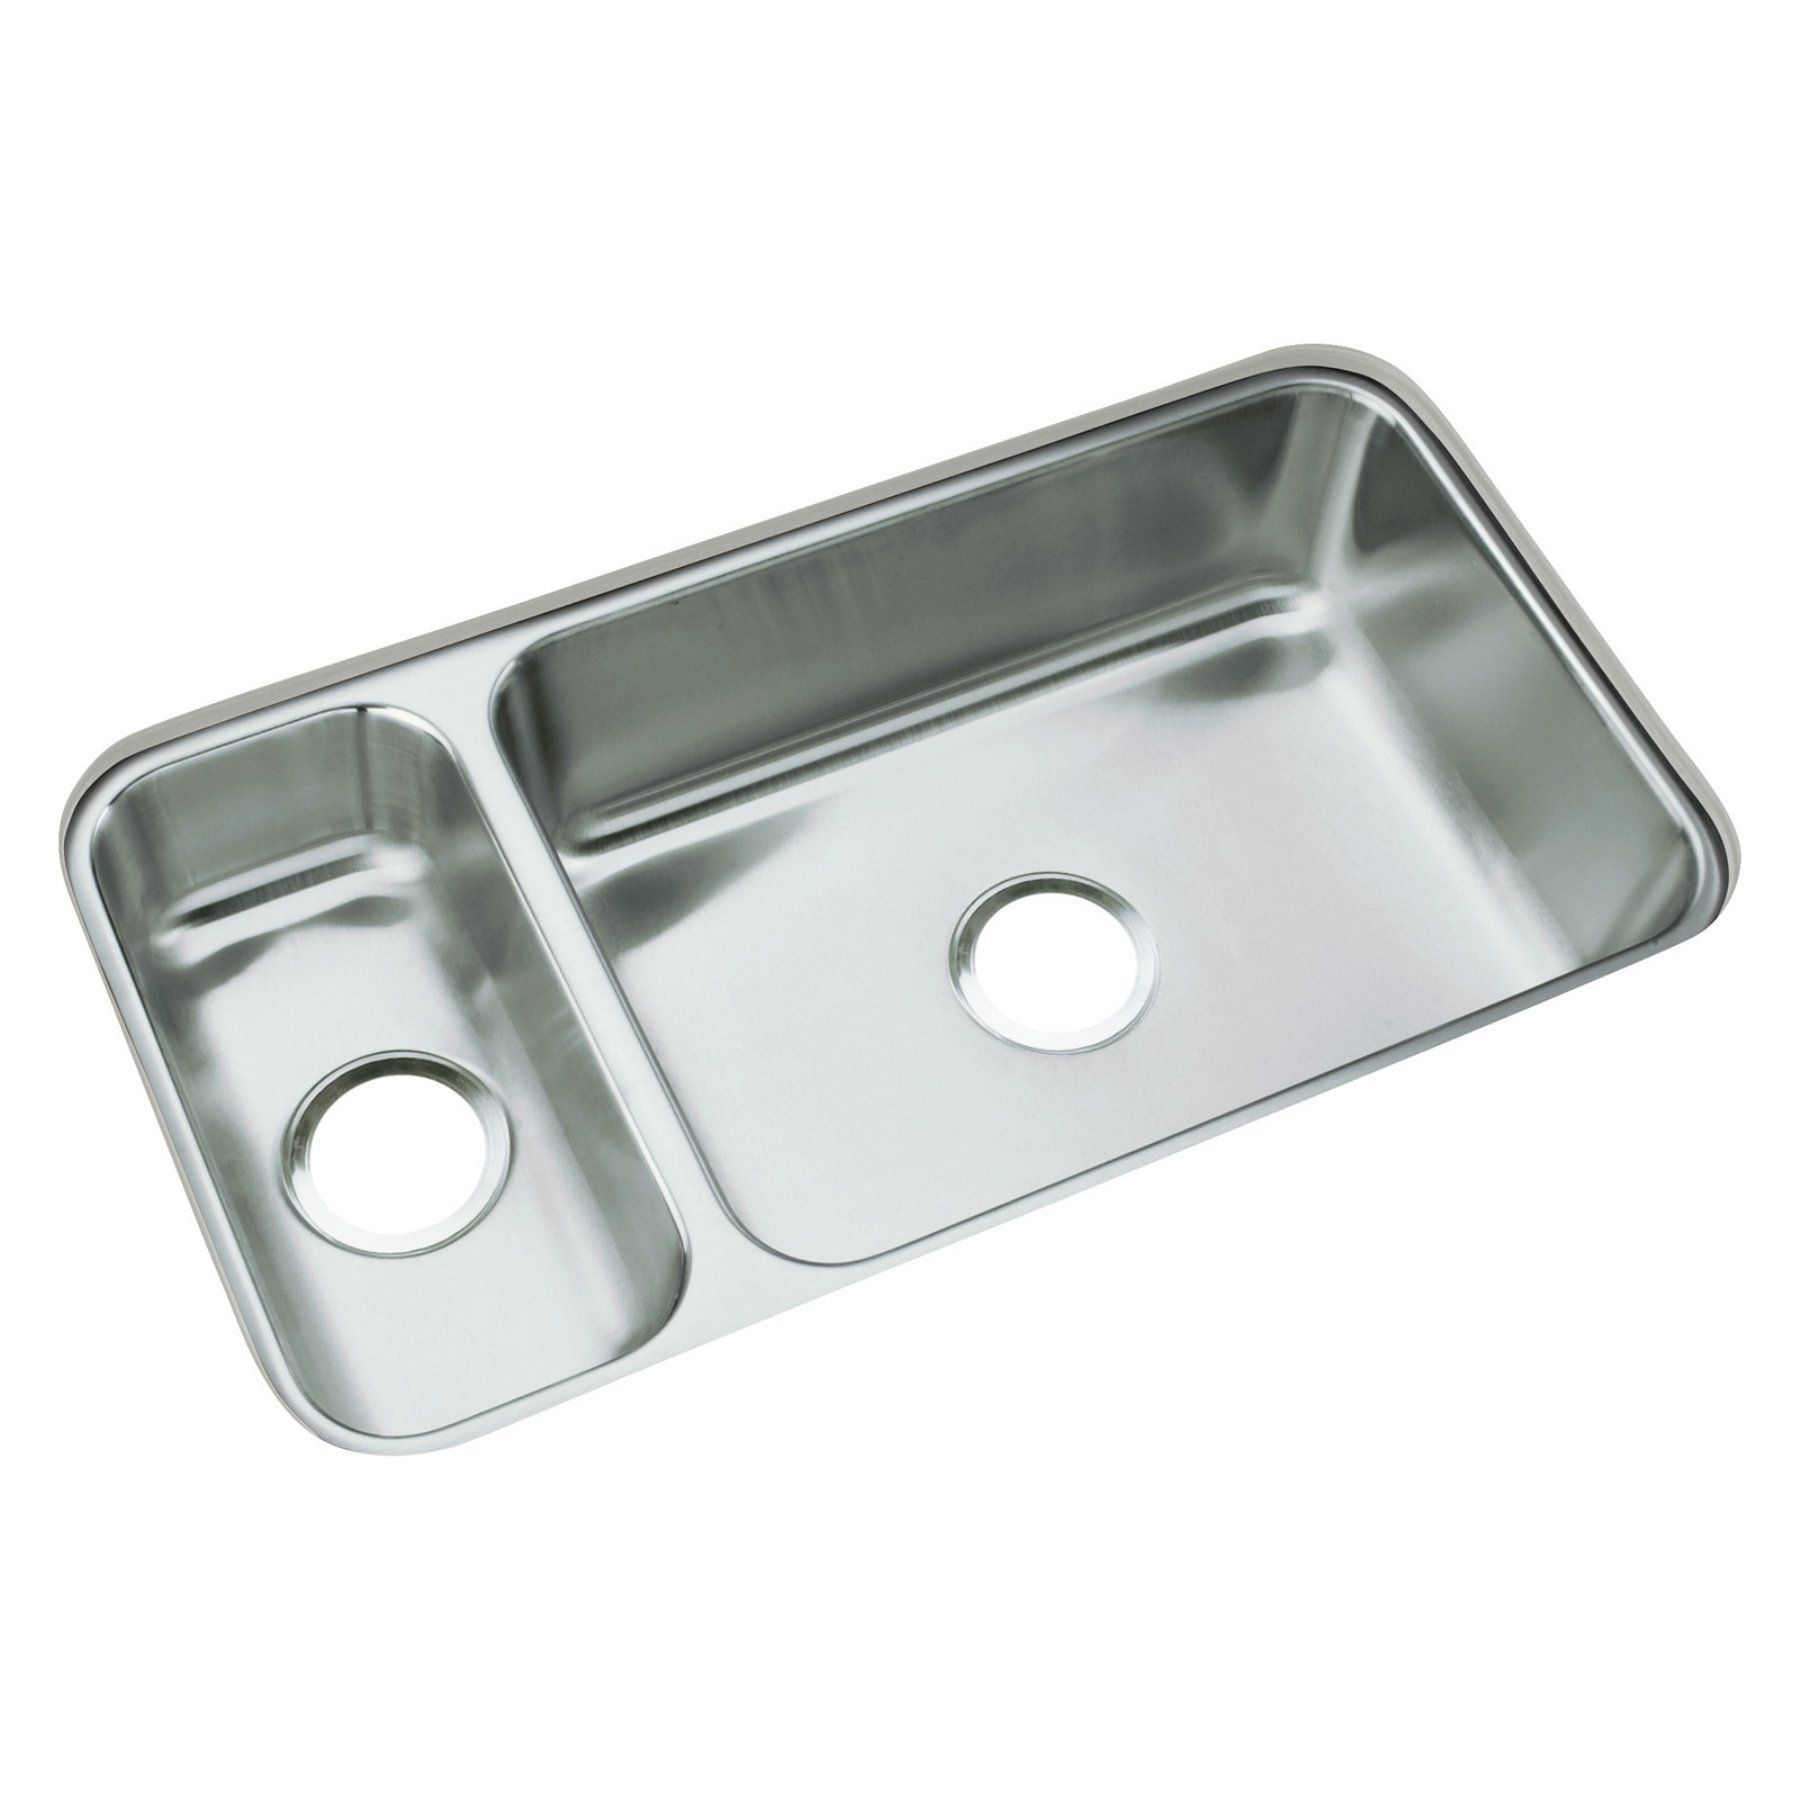 Sterling by Kohler McAllister® UCL3322R Double Basin Undermount on home depot undermount sinks, inset kitchen sinks, stone sinks, american standard kitchen sinks, kohler kitchen sinks, elkay sinks, black kitchen sinks, stainless steel kitchen sinks, overmount kitchen sinks, undermount sinks 60 40, smart divide kitchen sinks, farm kitchen sinks, antique kitchen sinks, swanstone kitchen sinks, single bowl kitchen sinks, solid surface kitchen sinks, lowes kitchen sinks, ceramic kitchen sinks, farmhouse kitchen sinks, granite kitchen sinks,